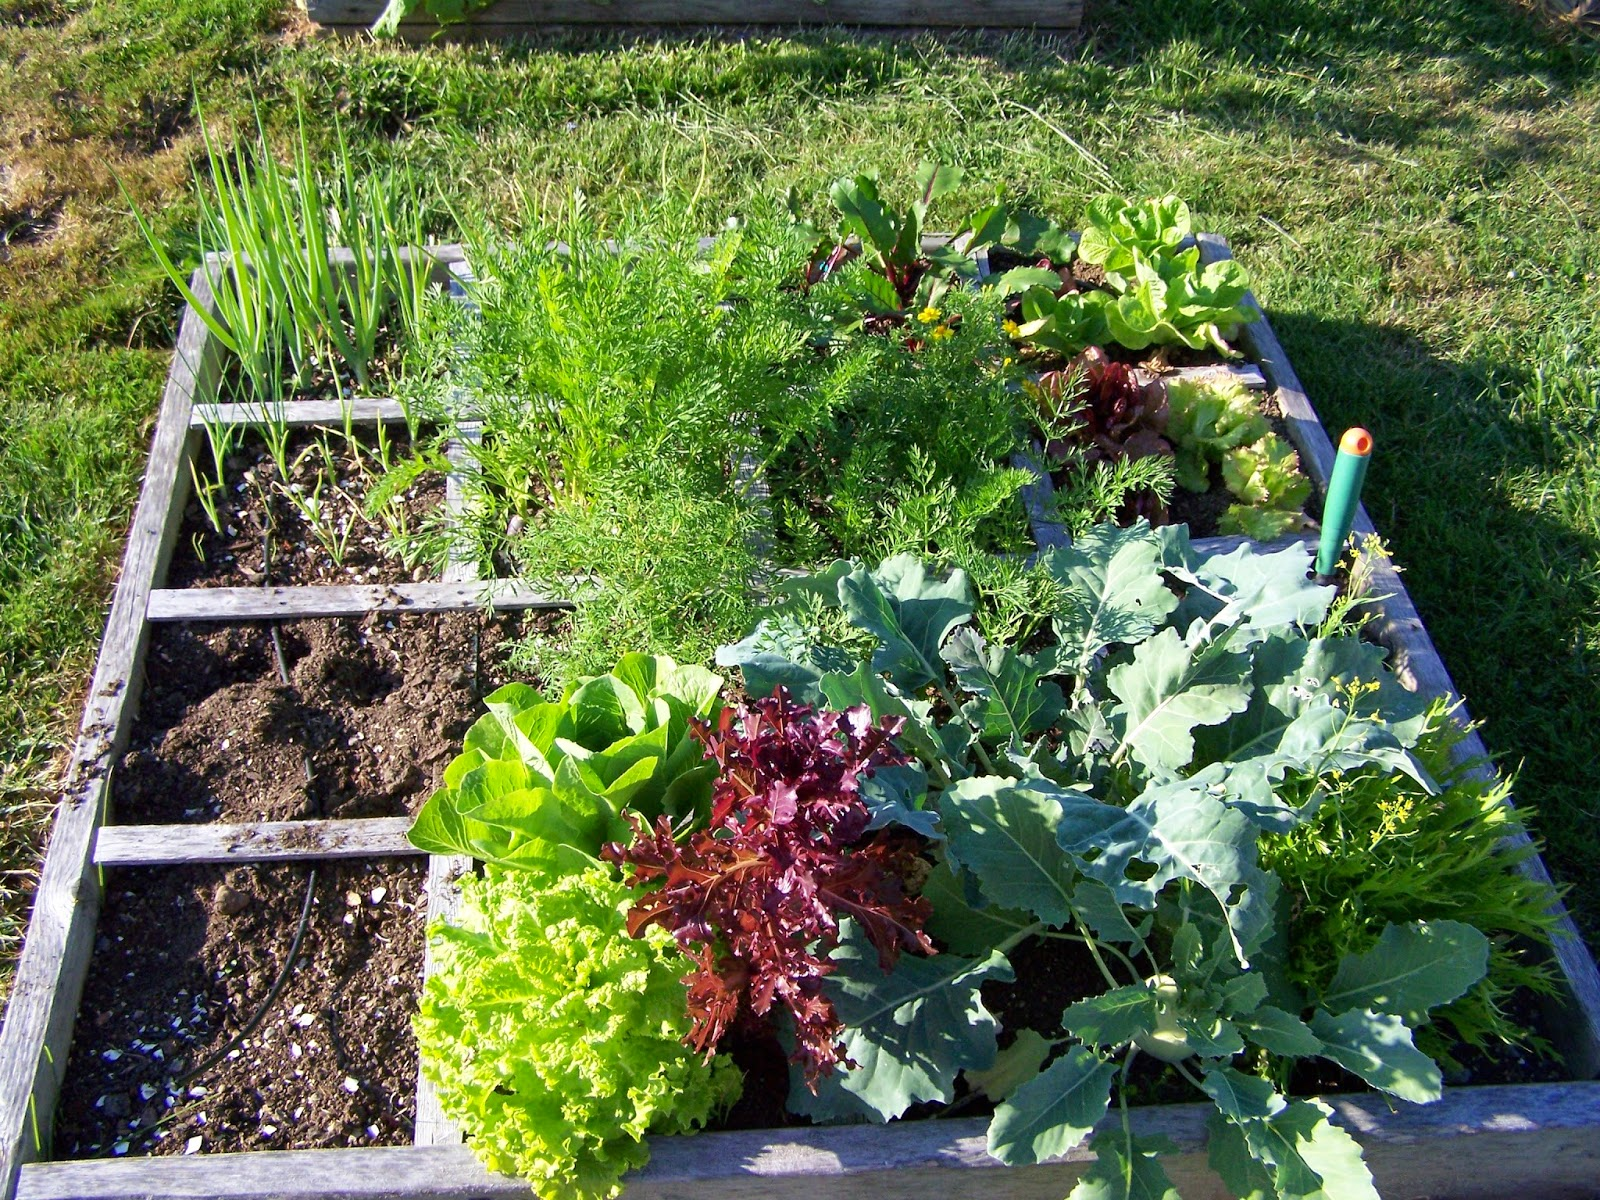 Square Foot Gardening Lettuces and Onions Copyright Adrienne Z. Milligan